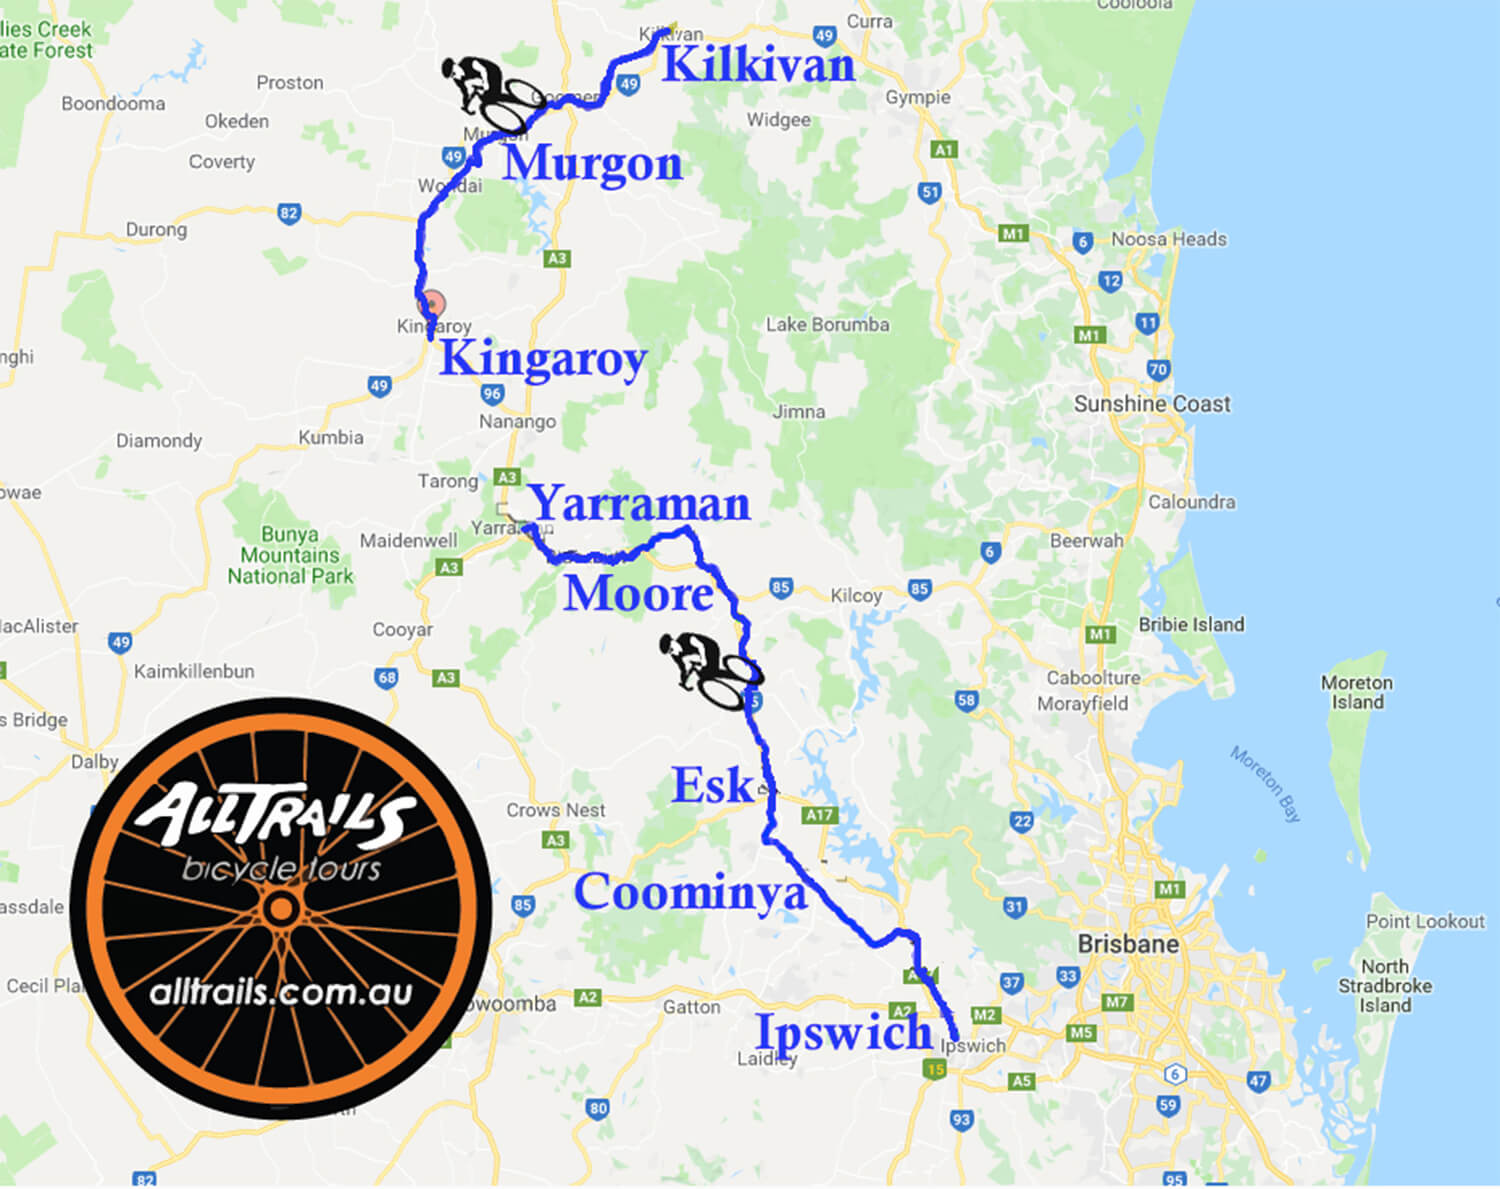 Queensland Rail Trails - Tour Route